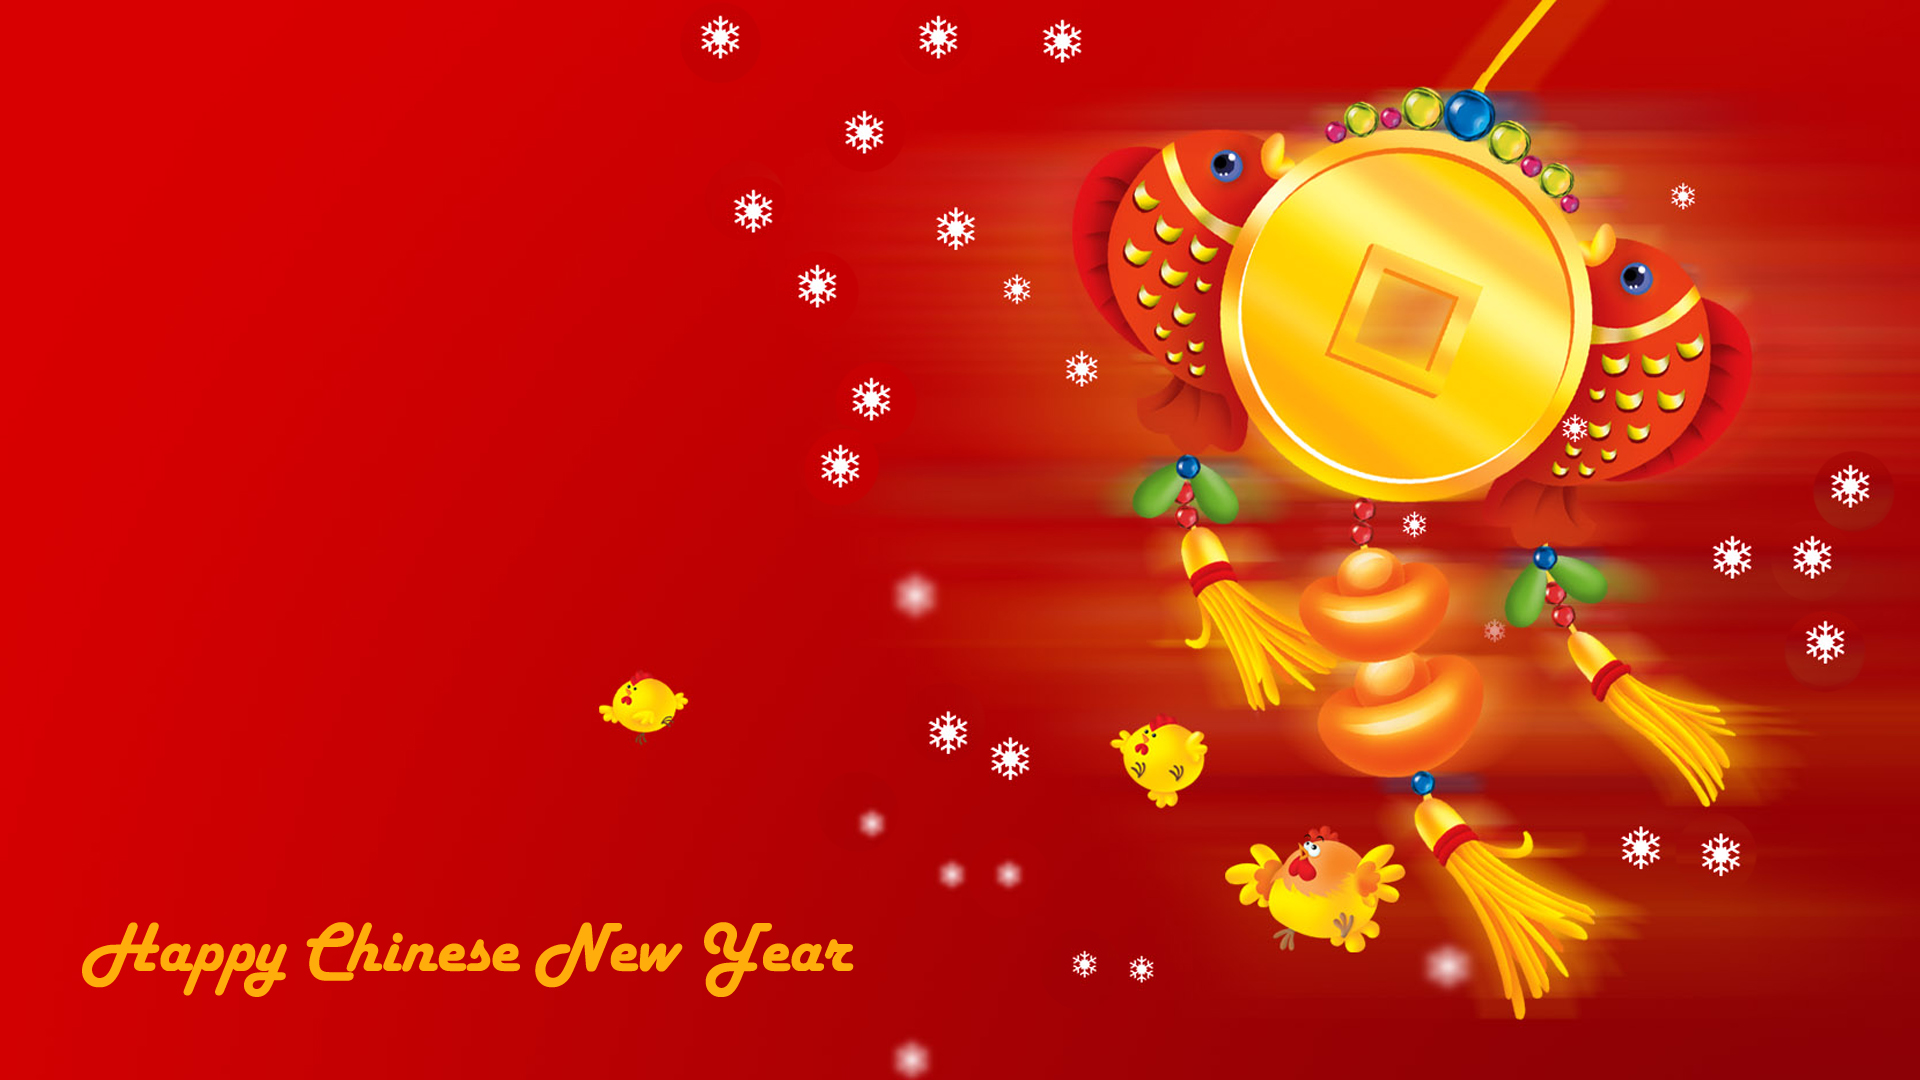 Rooster Chinese New Year Wallpaper Free Download Of Imlek For With Cartoon And Red Background